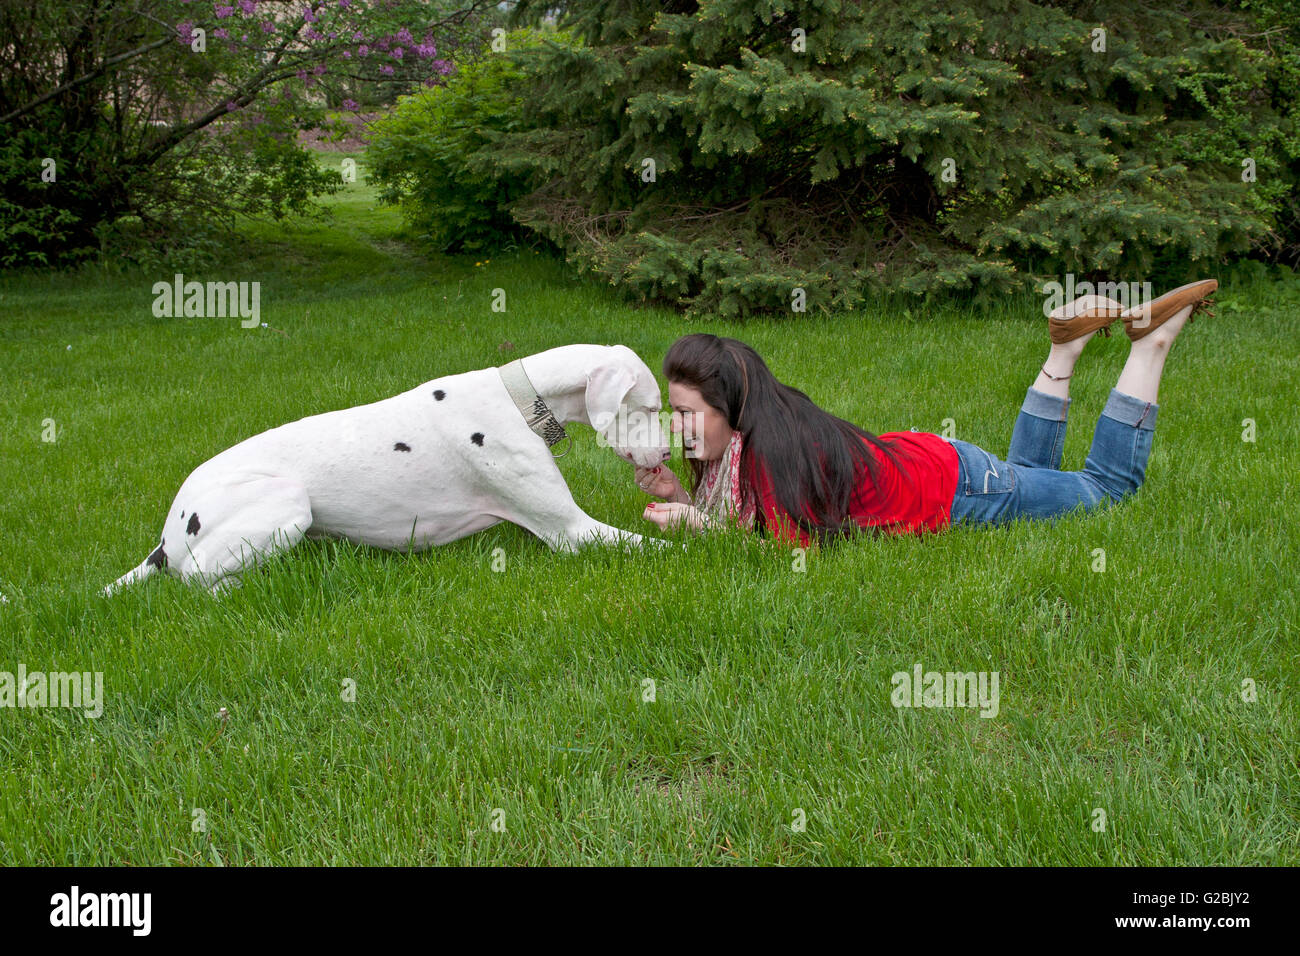 Woman in red bonds with big dog - Stock Image